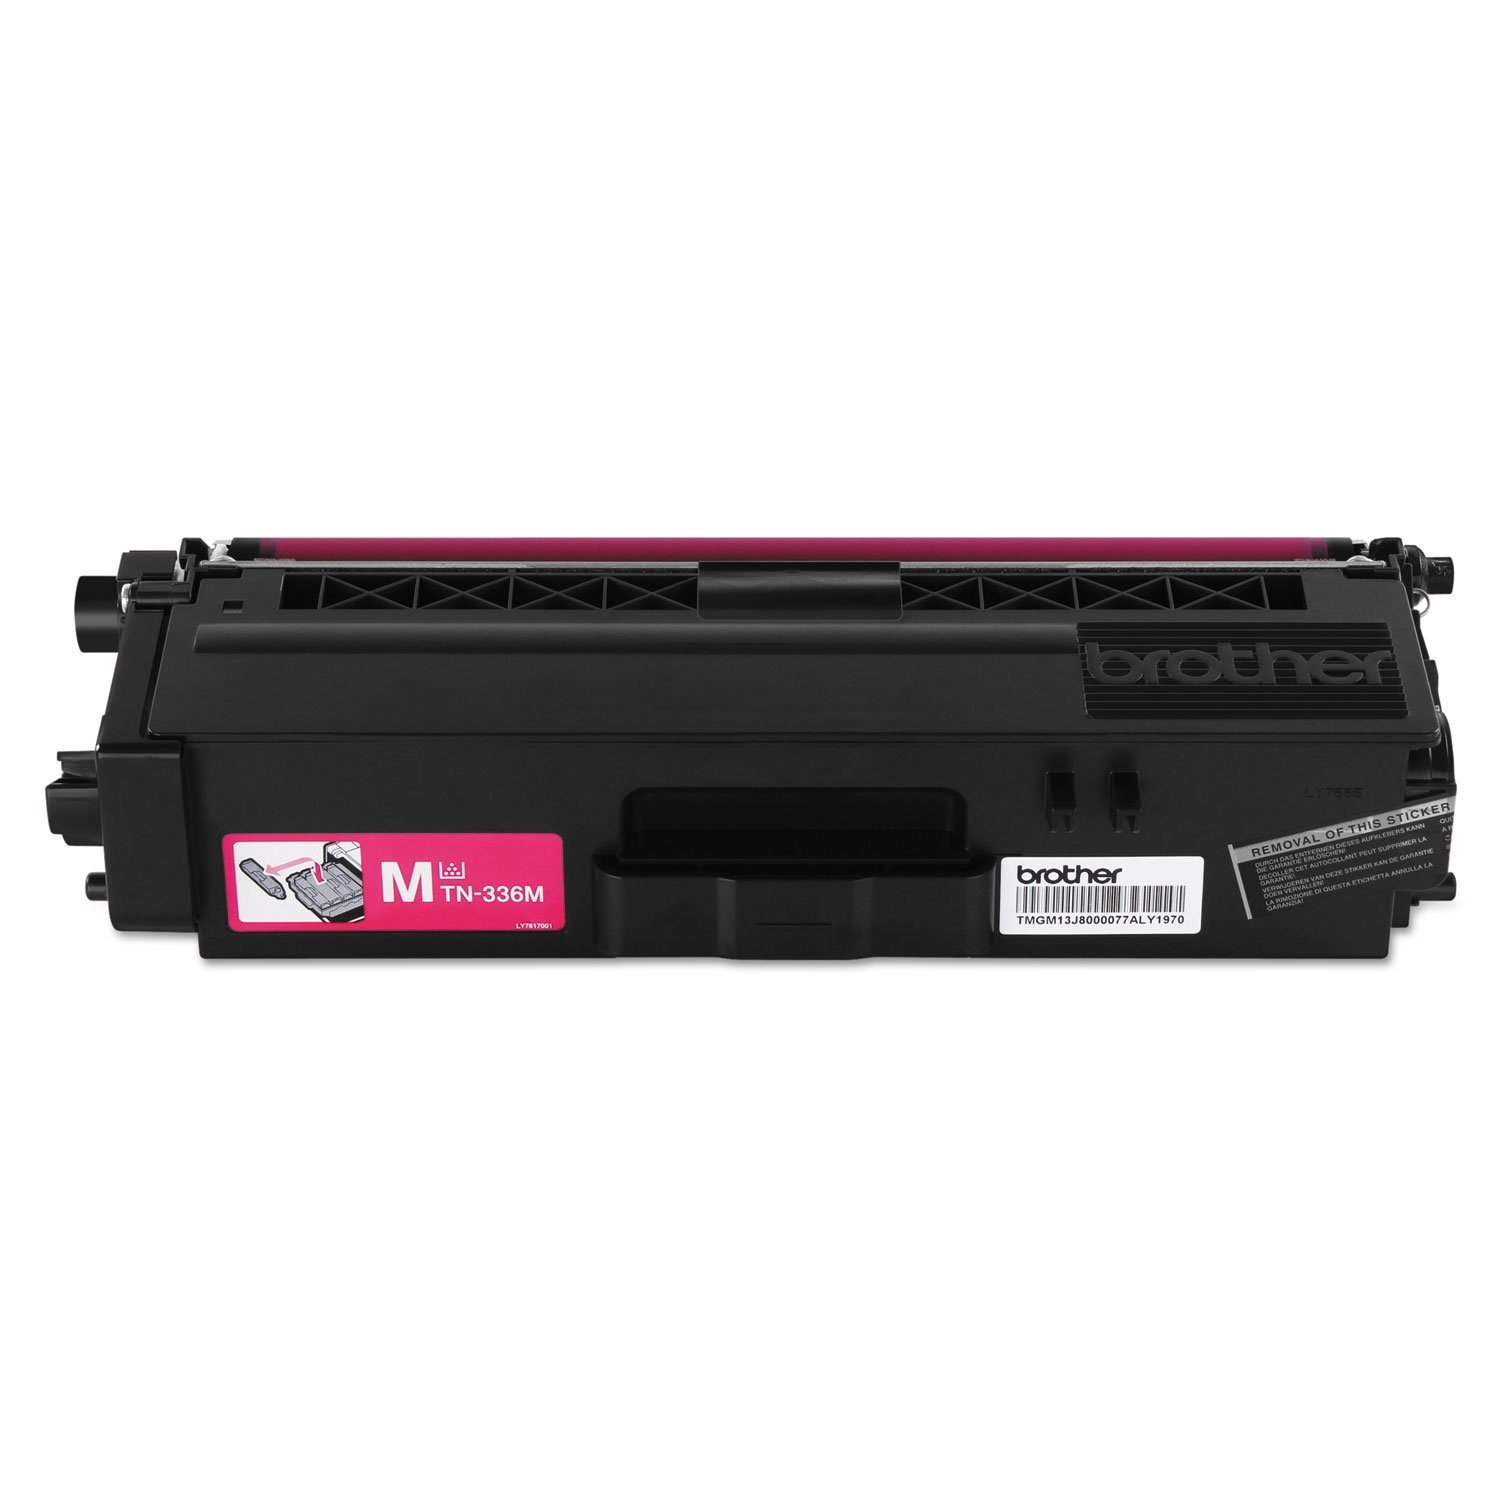 Brother TN336BK, TN336C, TN336M, TN336Y High Yield Black, Cyan, Magenta and Yellow  Toner Cartridge Set by Brother (Image #8)